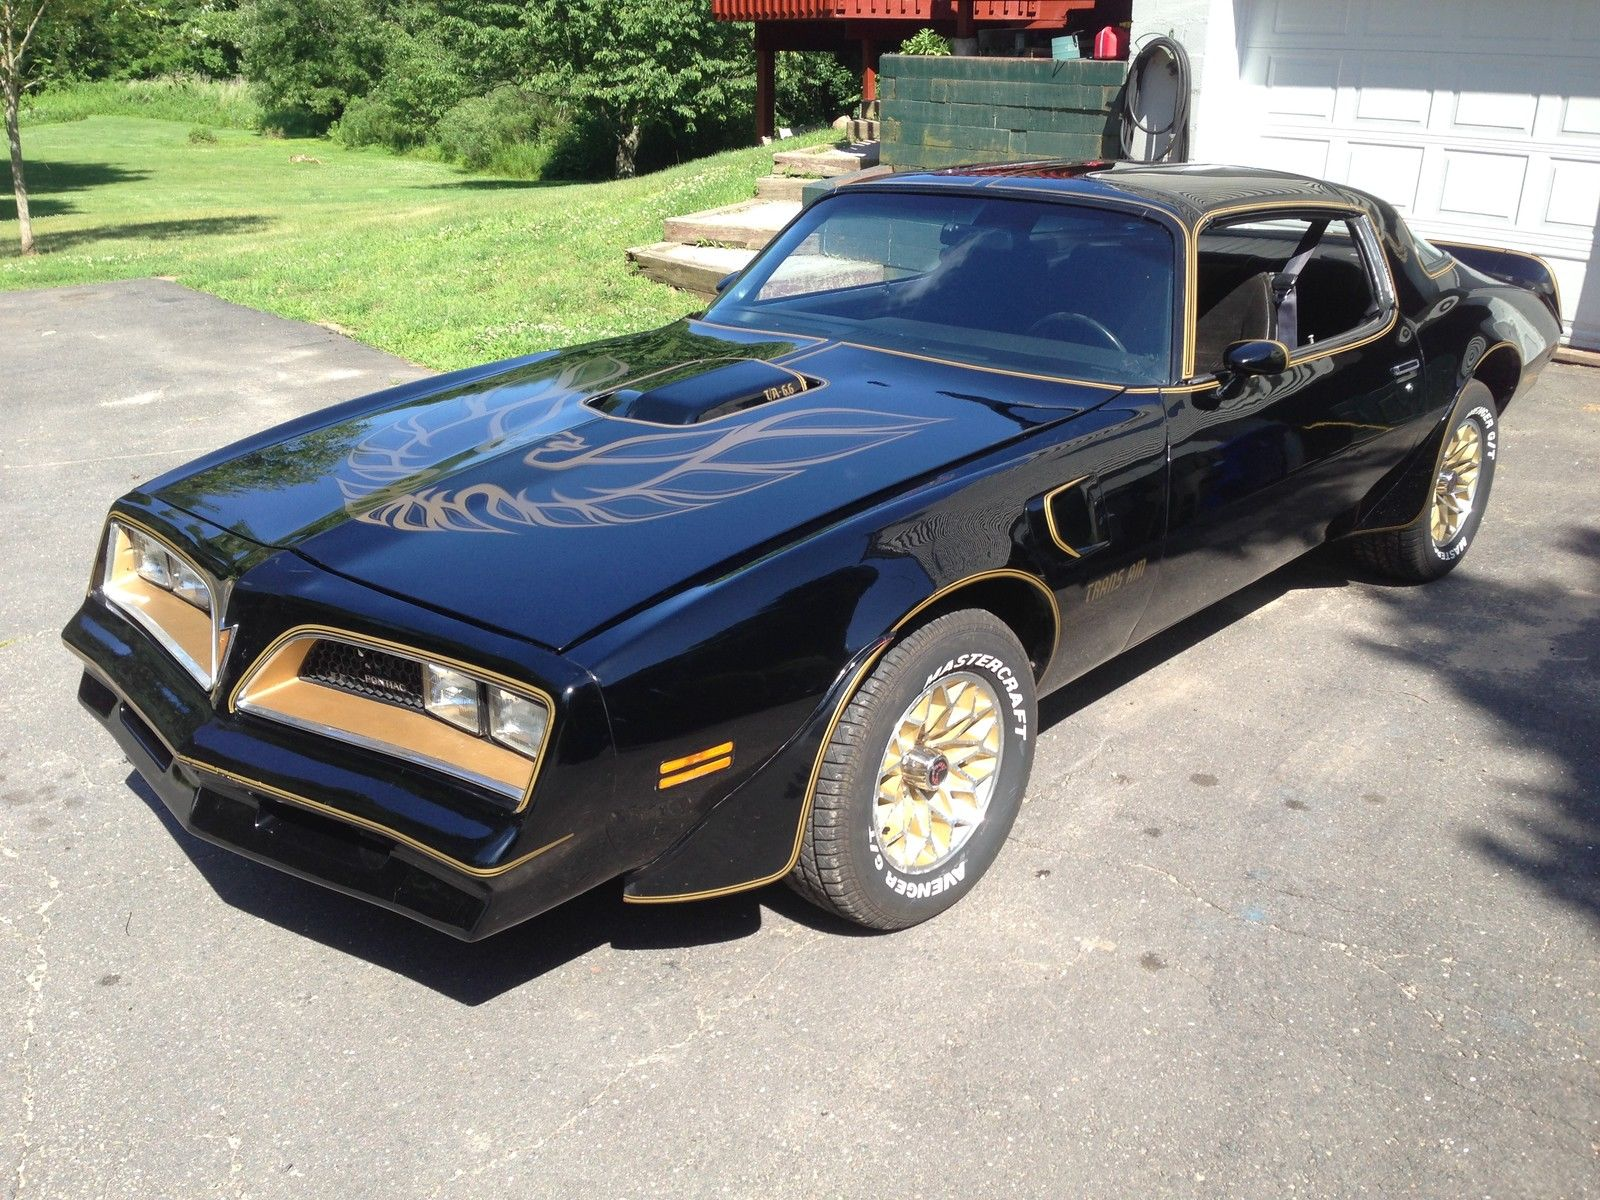 1978 pontiac trans am bandit special edition muscle car. Black Bedroom Furniture Sets. Home Design Ideas